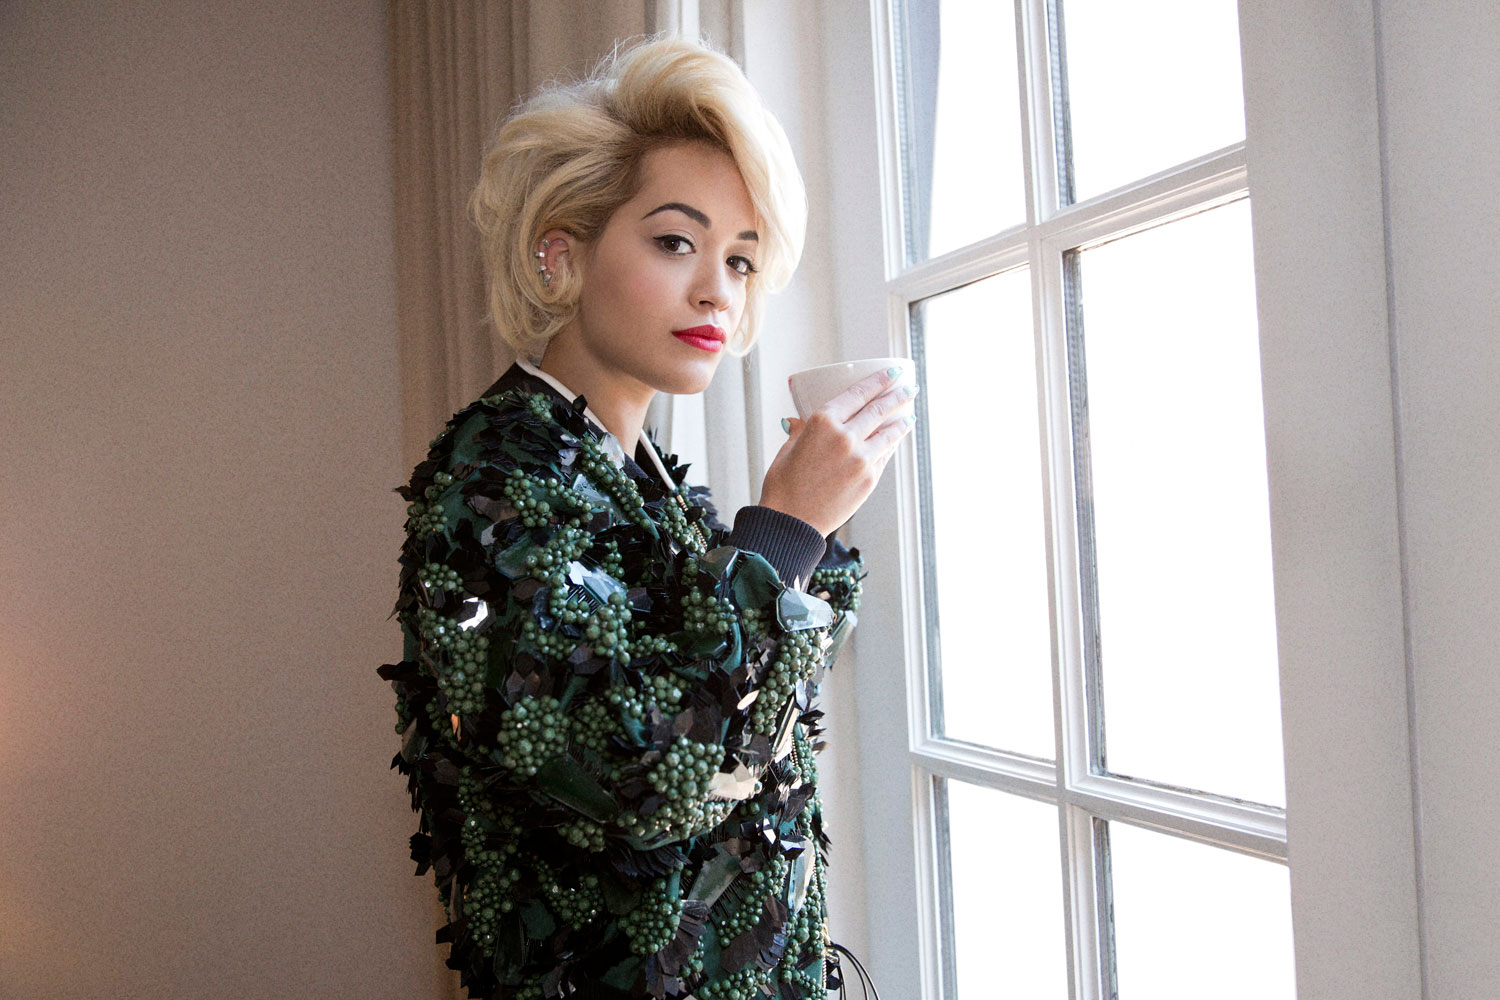 Rita Ora drinking coffee in red lipstick and a blonde bob, wearing a green sequin beaded jacket looking out window by Abbey Drucker for Glamour Magazine